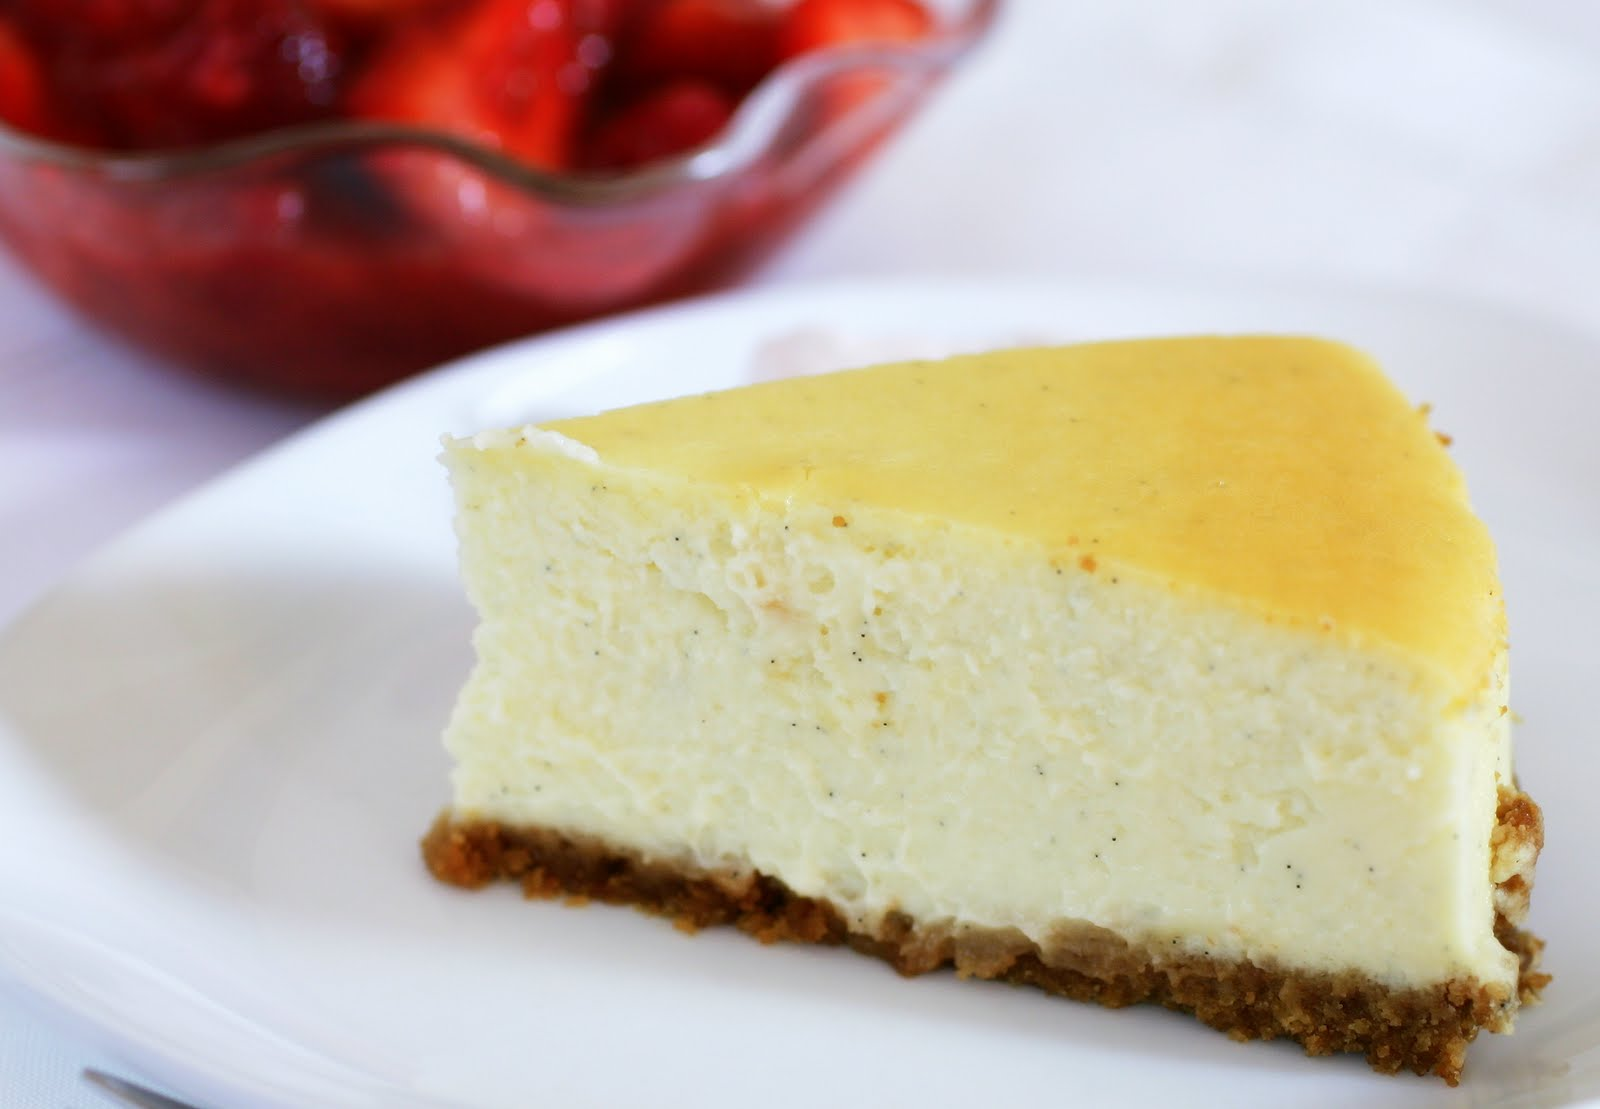 Tish Boyle Sweet Dreams: Classic Vanilla Cheesecake with Red Berry ...